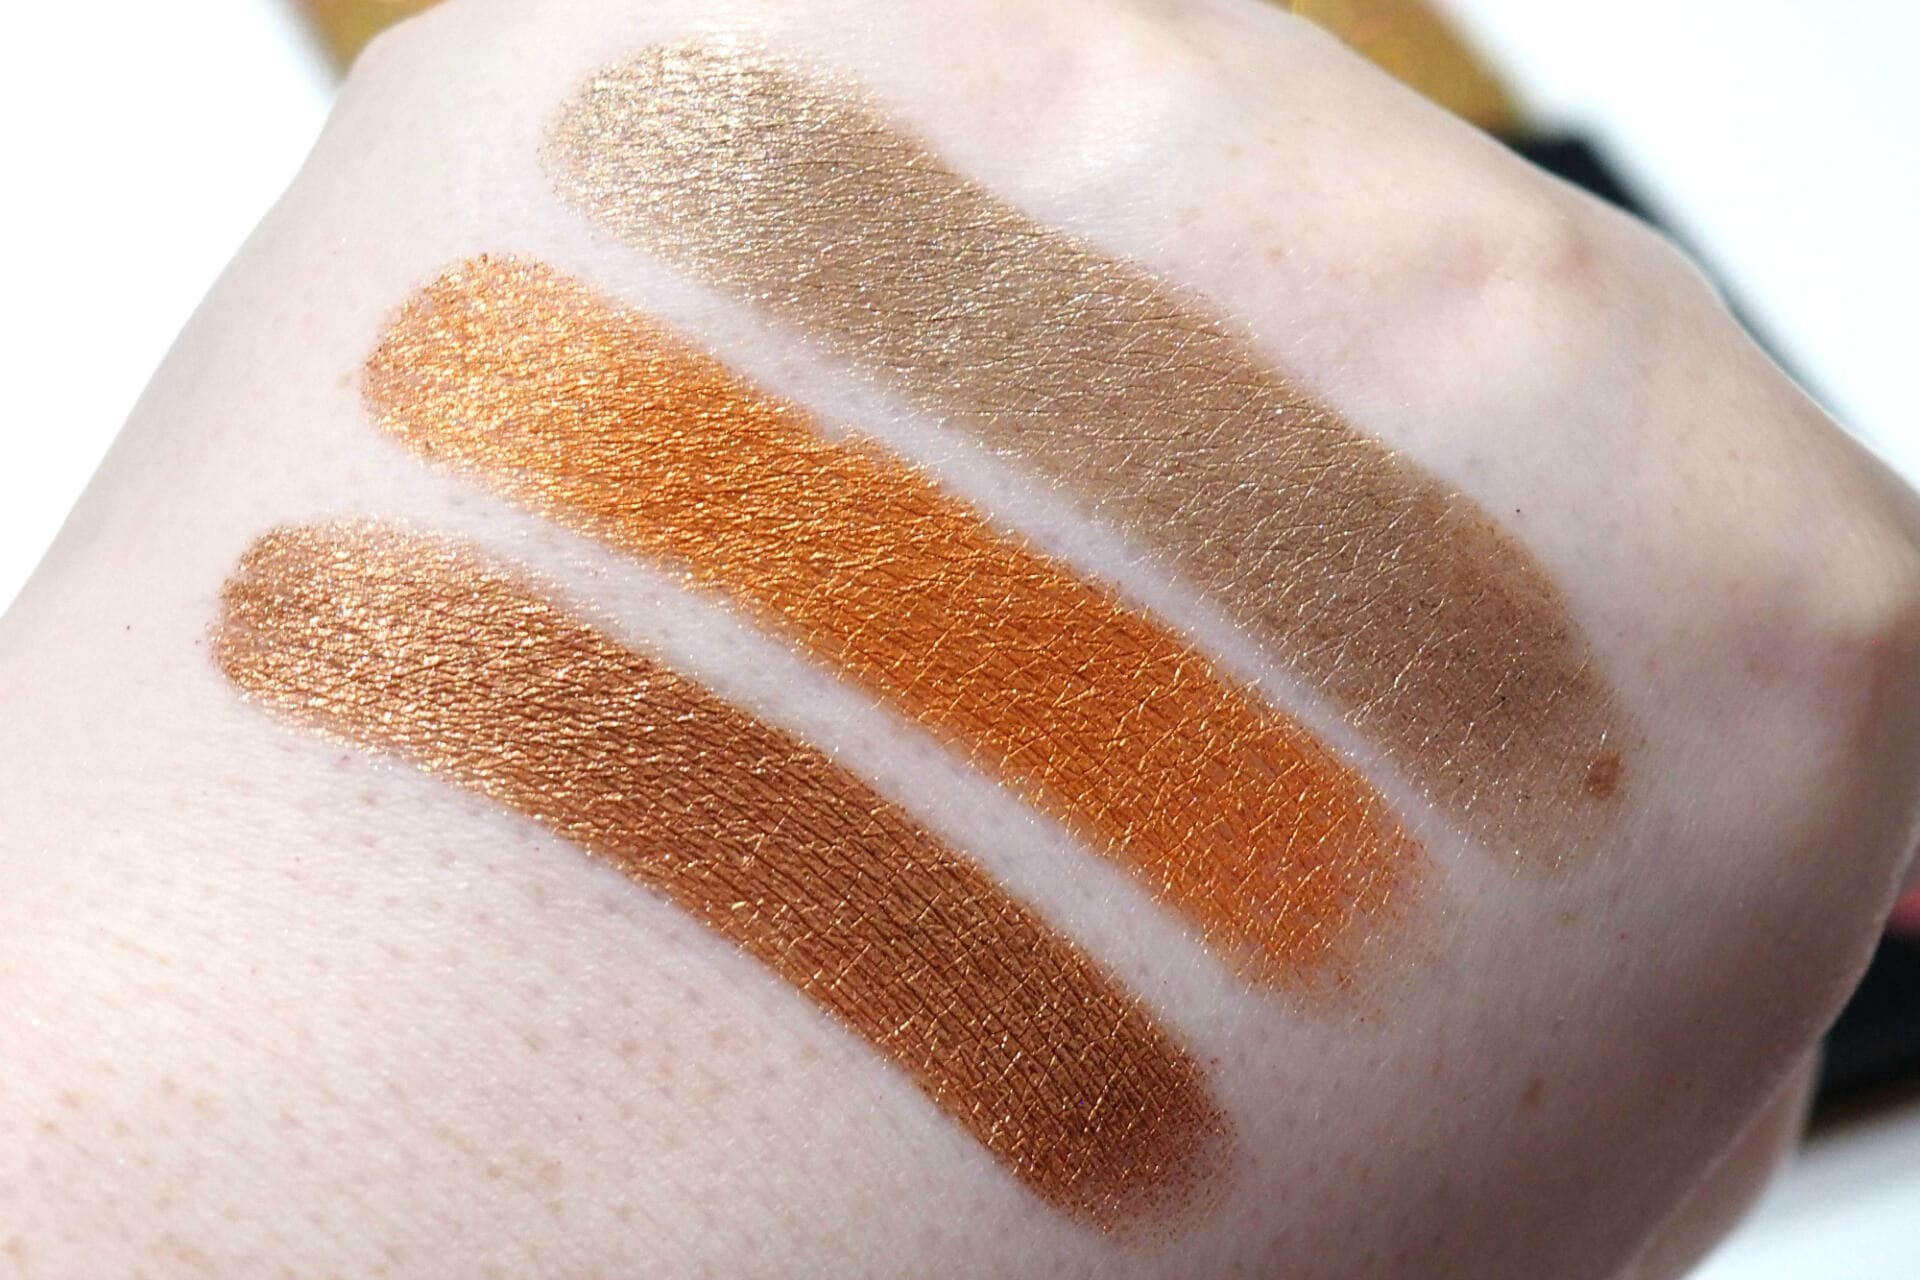 Revolution Sparkle Up Euphoric Foil Eyeshadow Palette Review Swatches